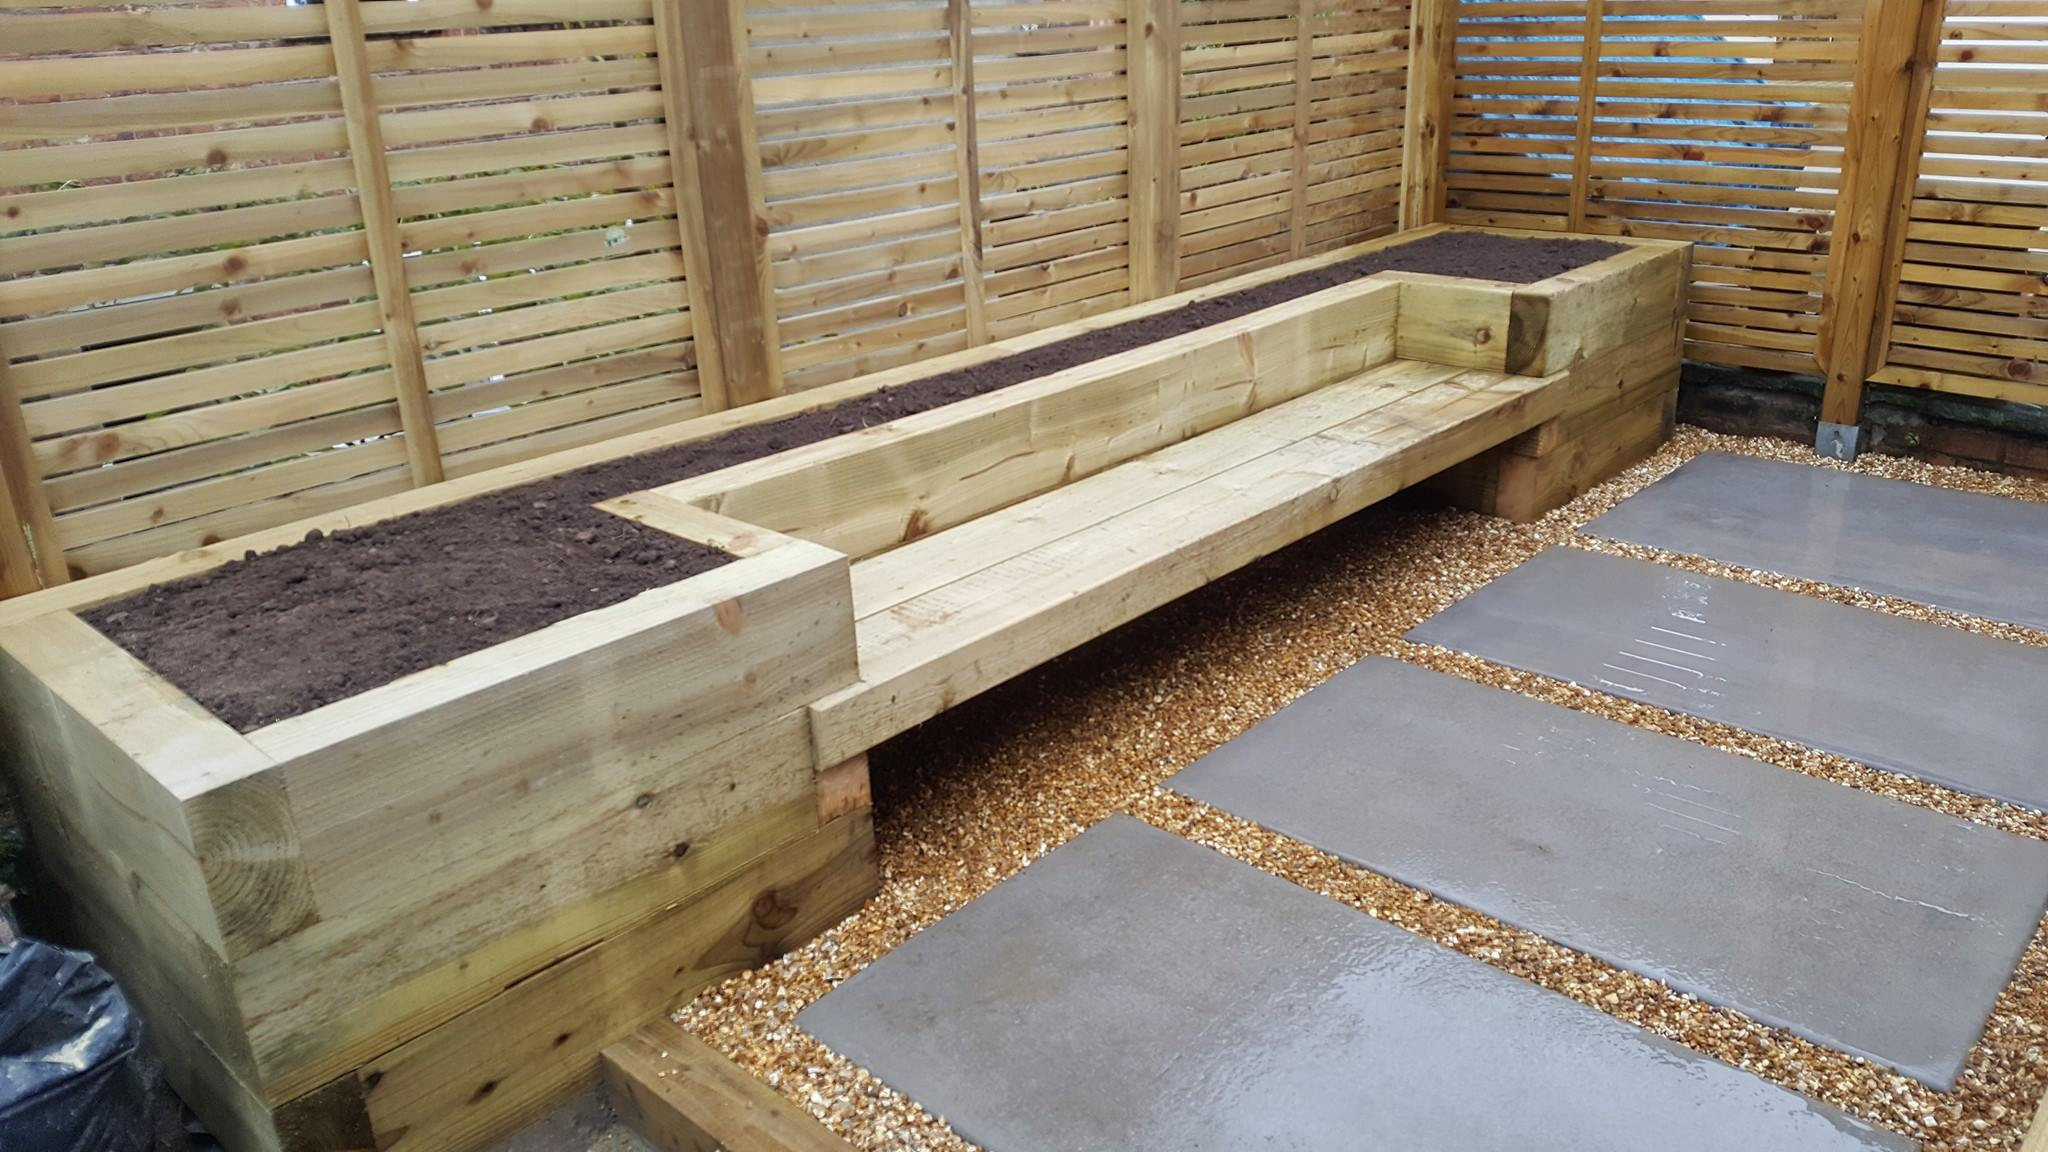 Bench Planters Using Sleepers-DMC Timber & Landscaping